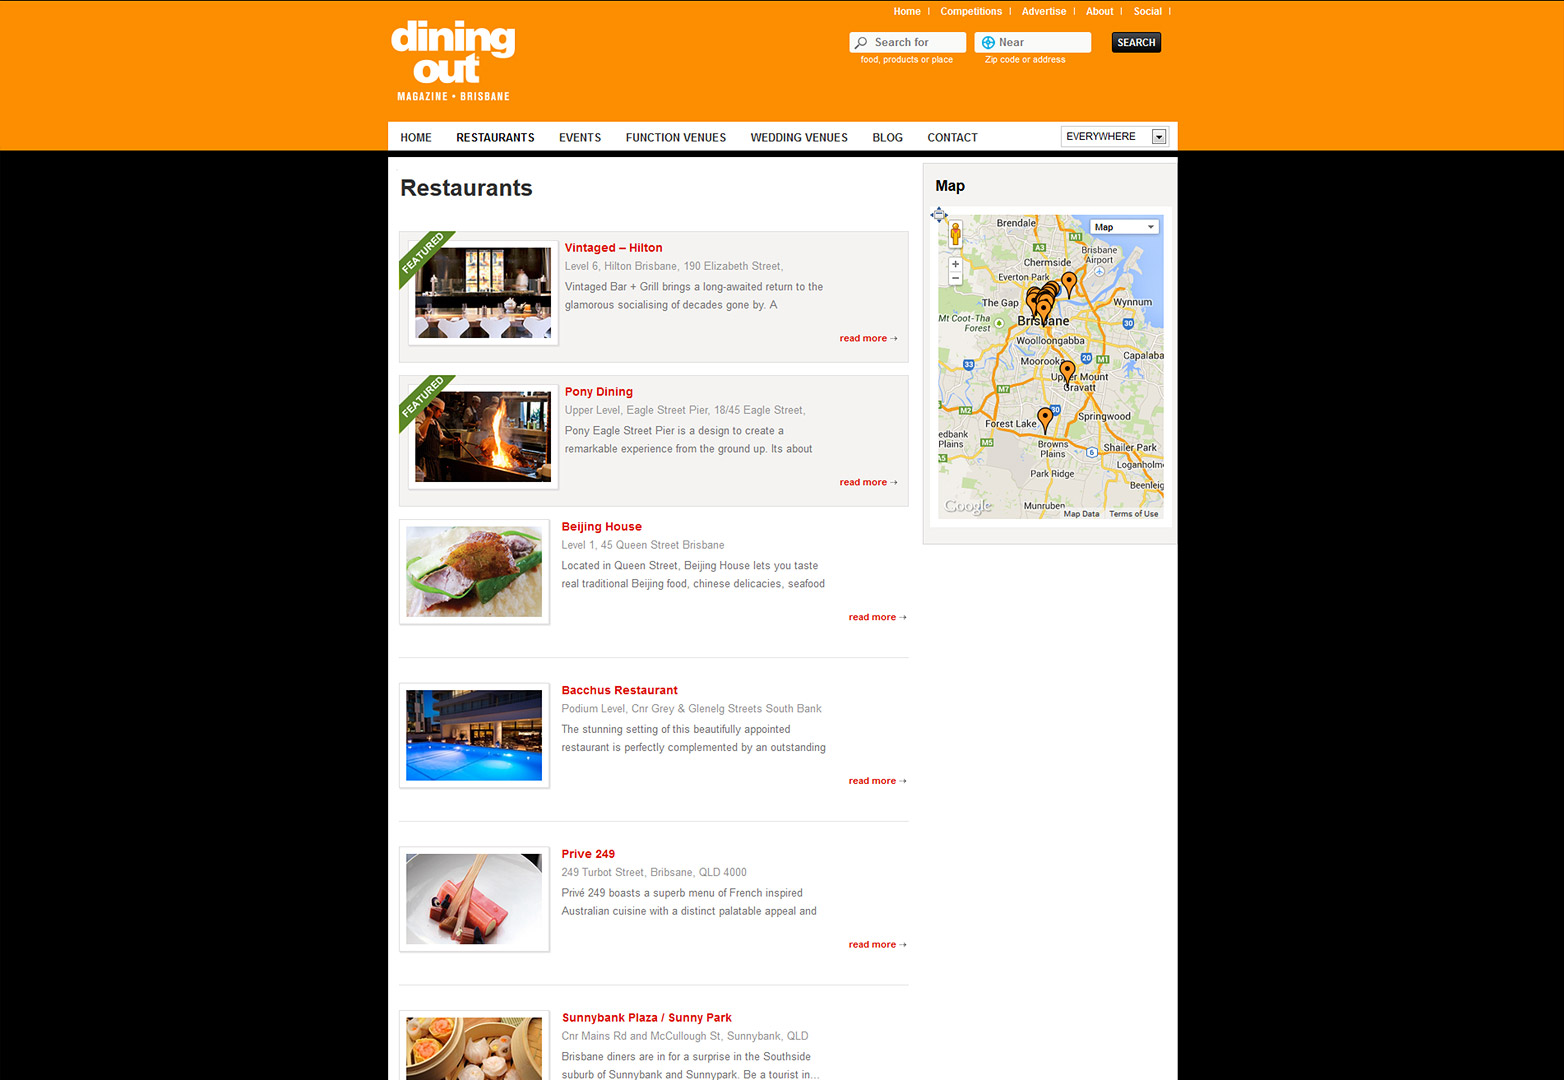 webdesign_diningout02